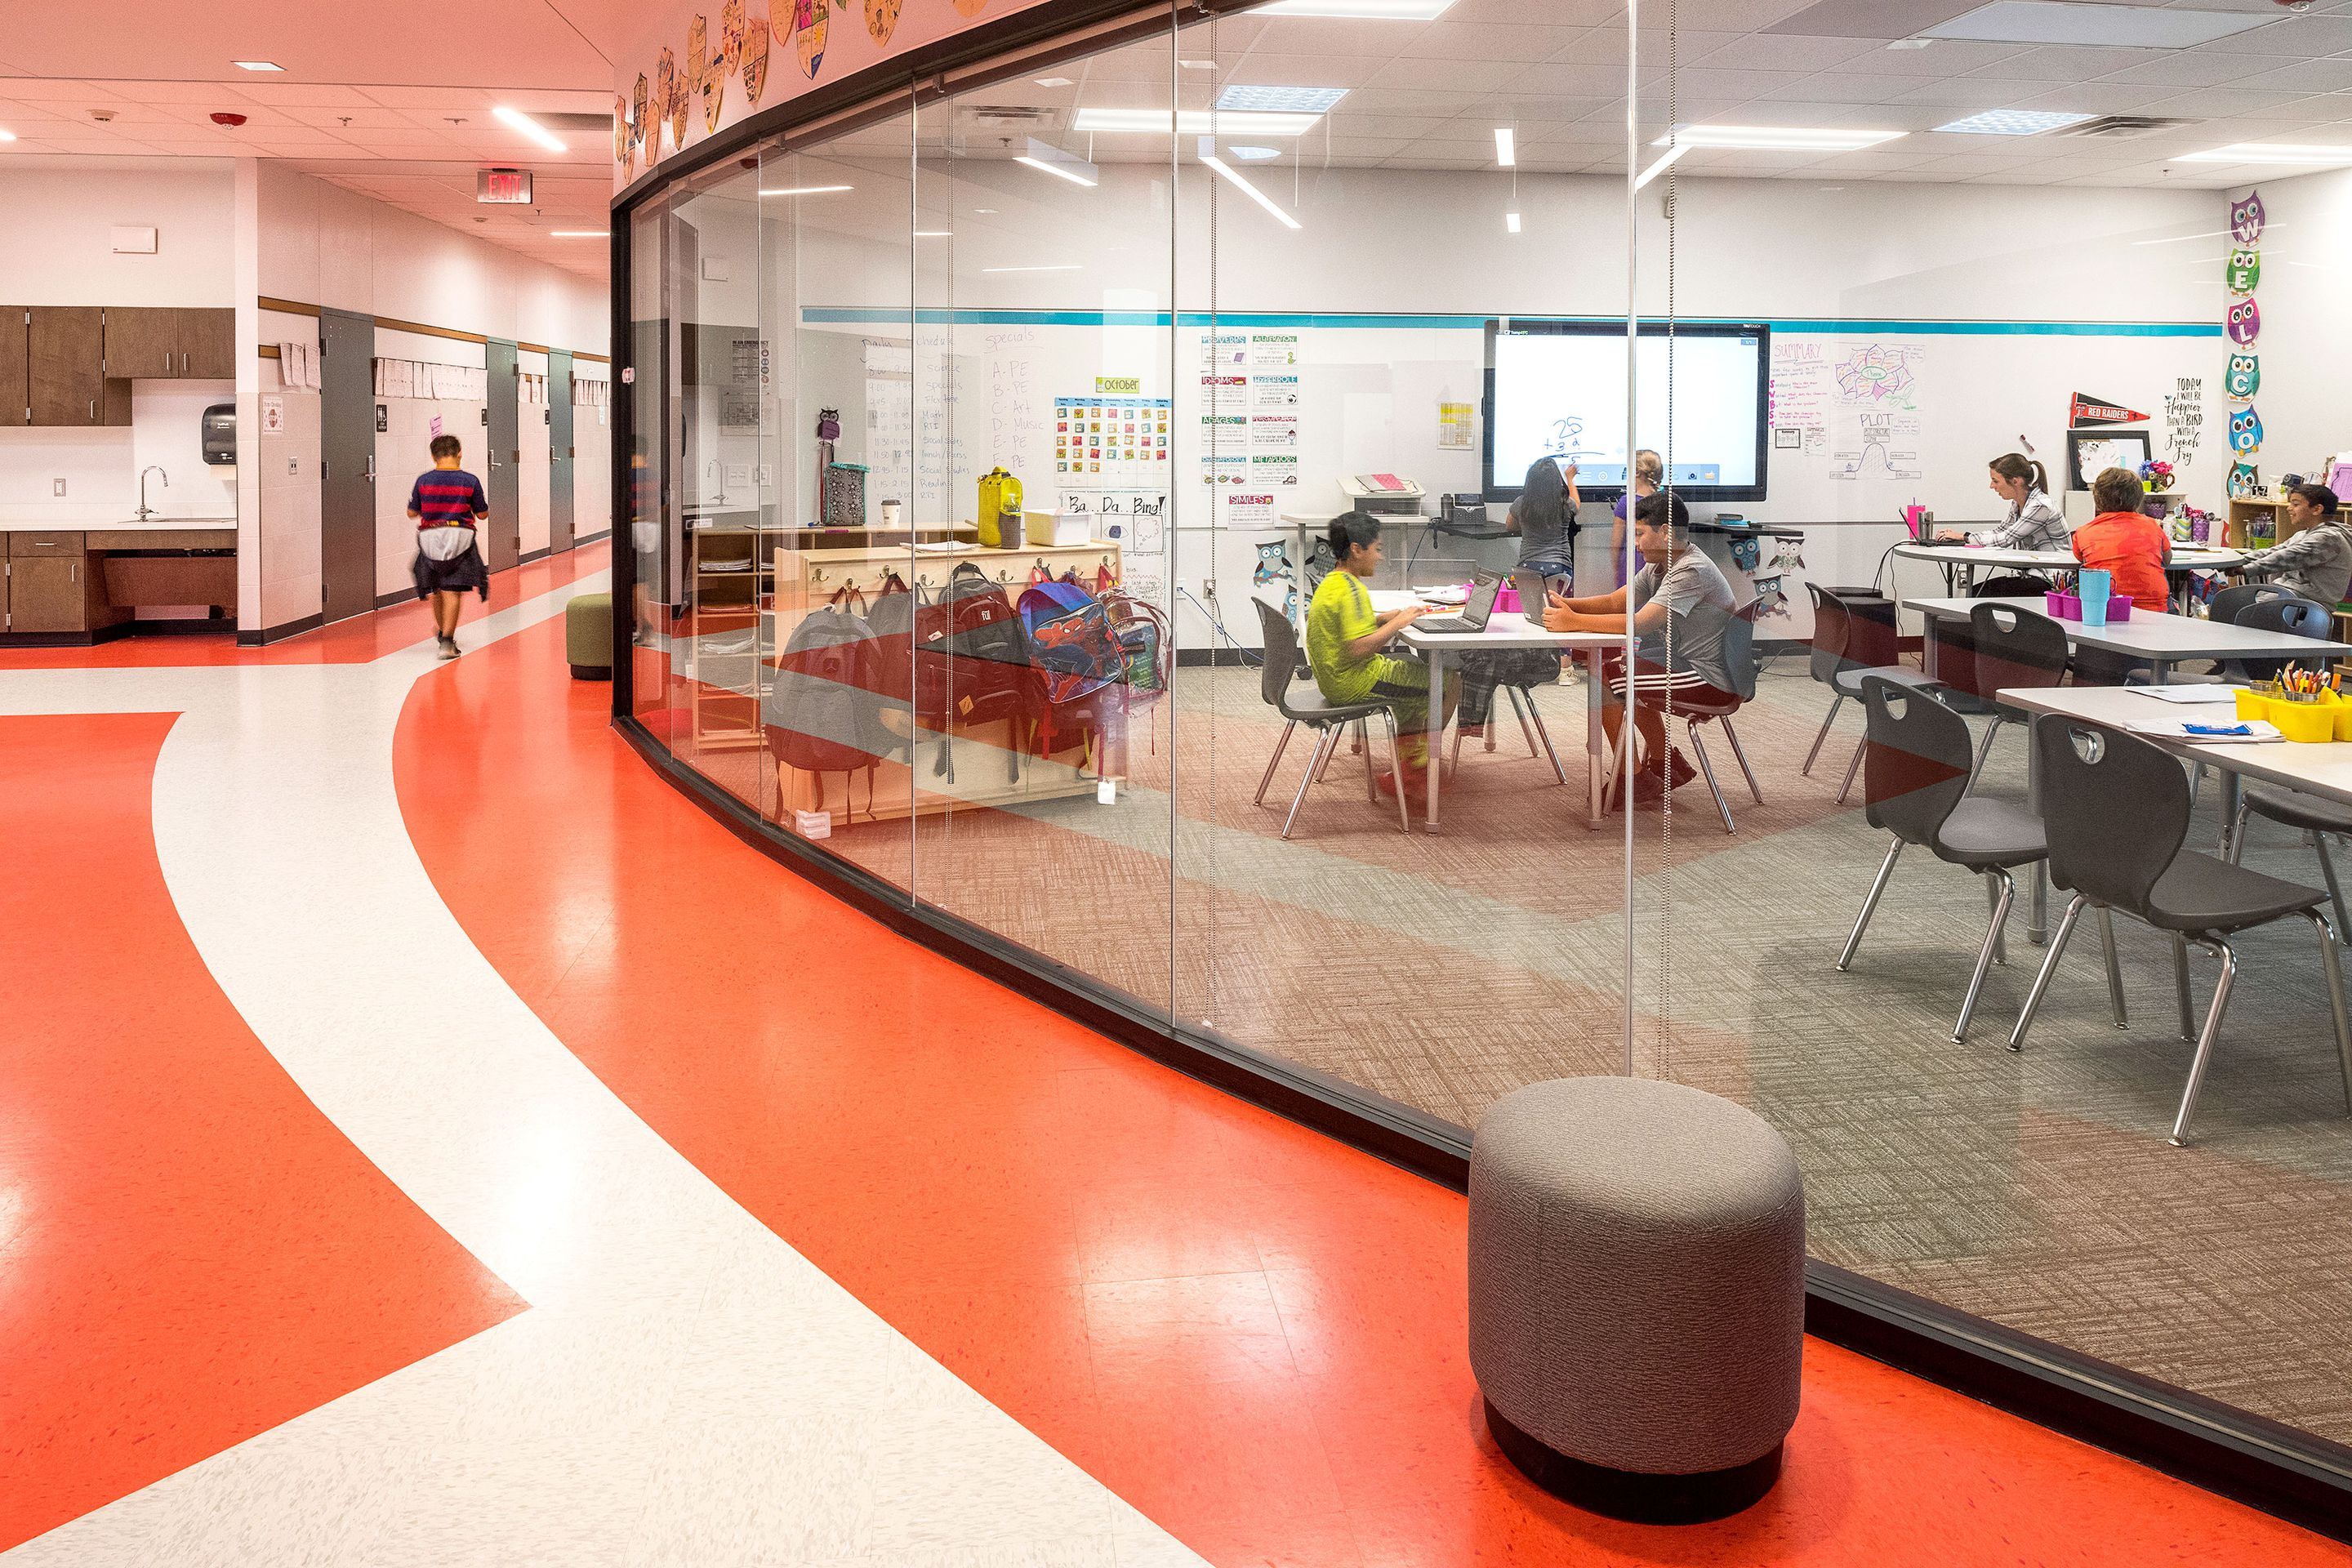 Each classroom at Annie Purl Elementary School features floor-to-ceiling glass walls to create an open and transparent environment.